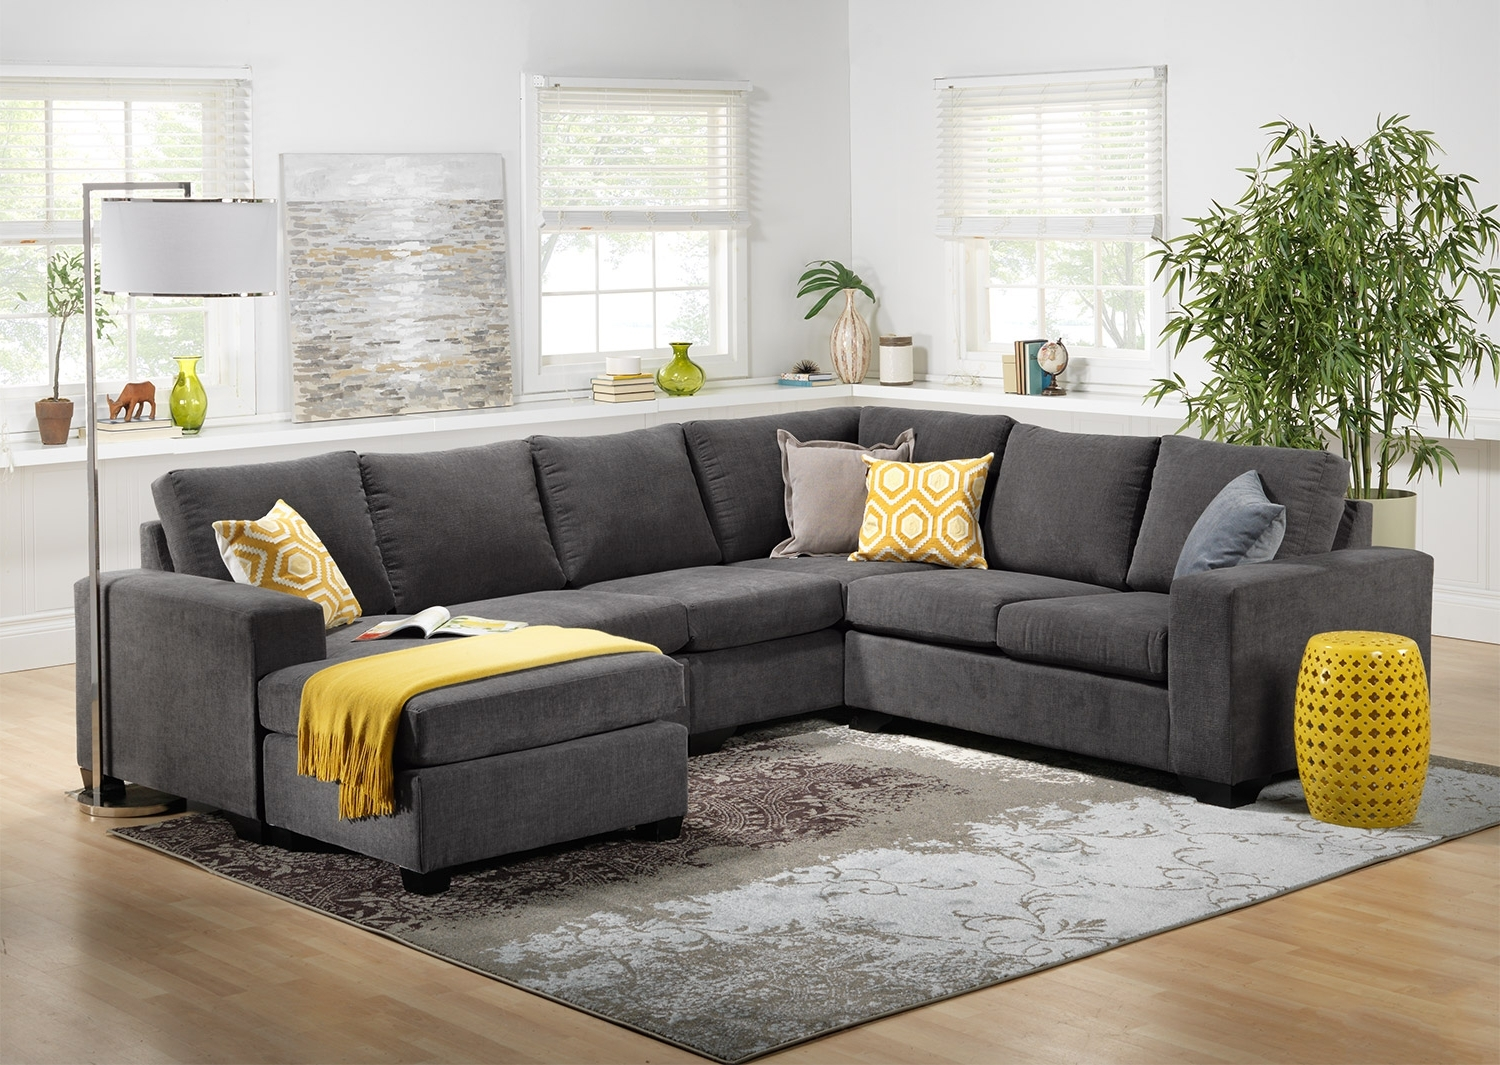 Ontario Canada Sectional Sofas Throughout 2018 Used Sectional Sofas For Sale Edmonton Best Home Furniture Ideas (Gallery 3 of 15)